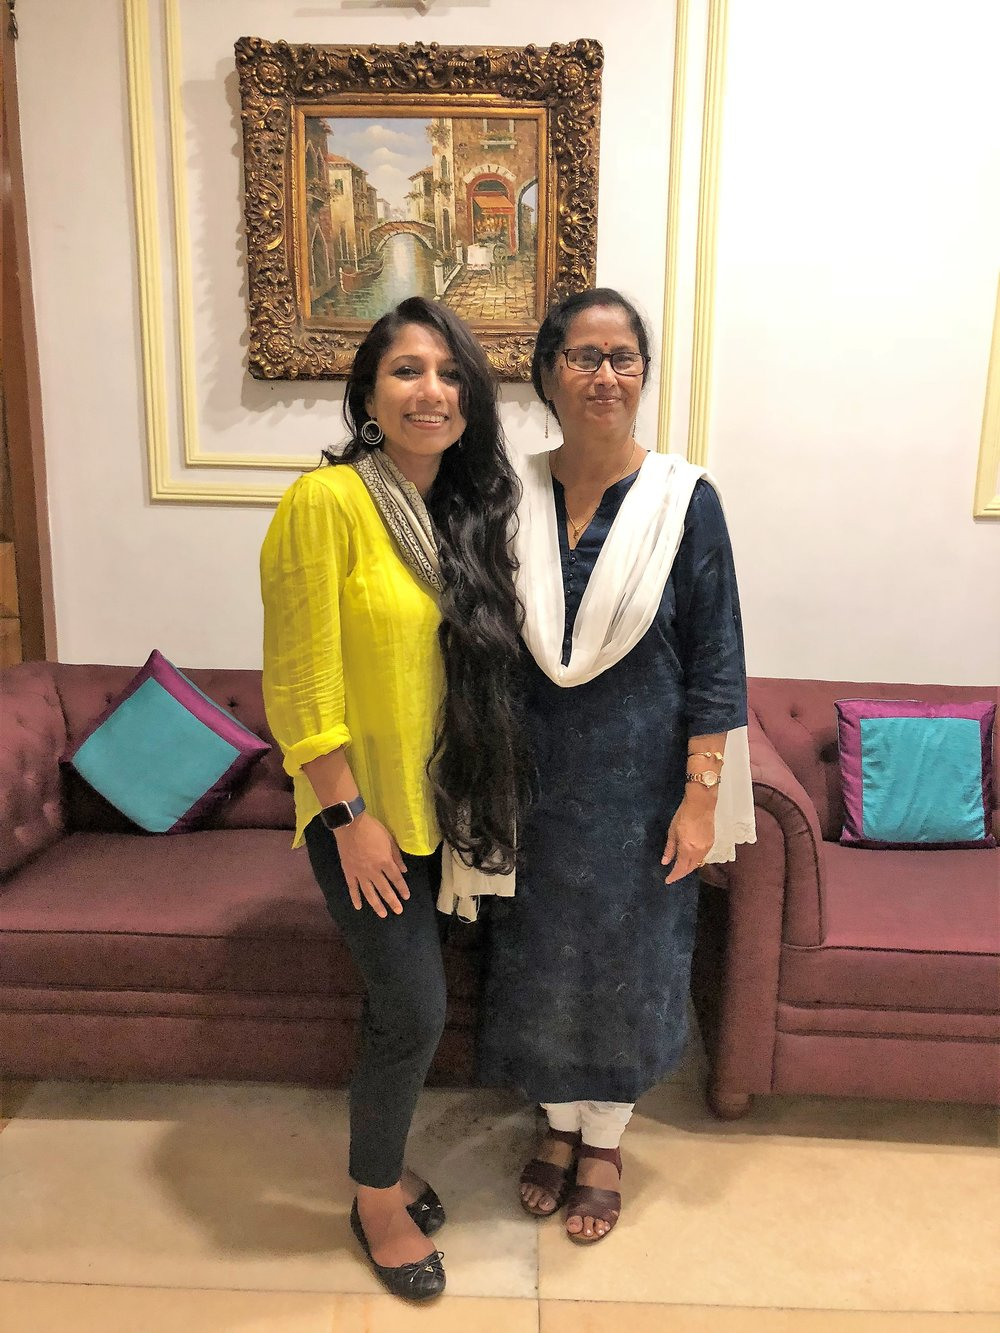 With Mrs. Susama Patgiri who is immensely supportive for the cause and is a part of connectors' committee of the foundation!